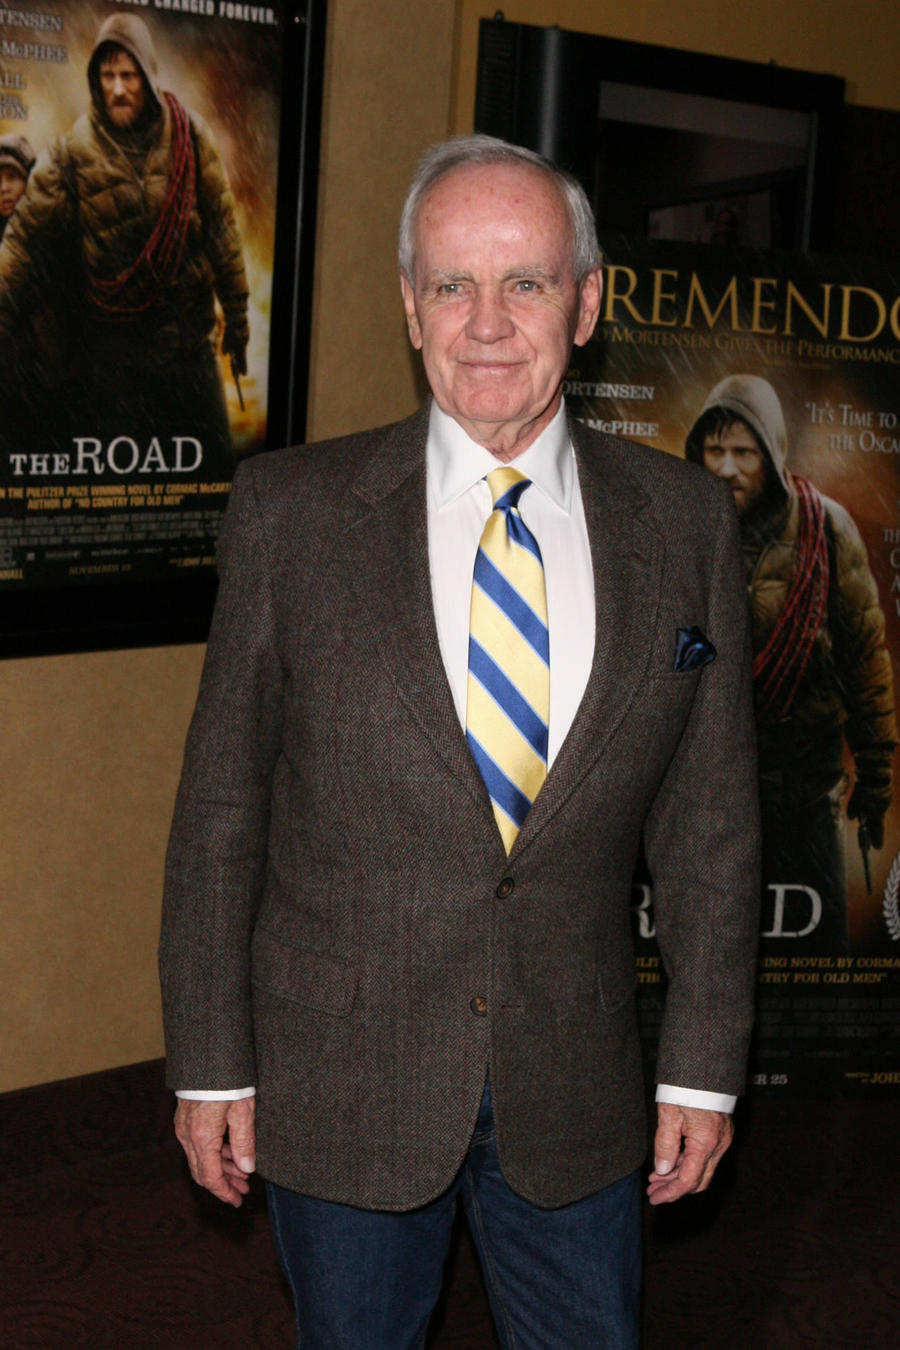 Author Cormac Mccarthy Victim Of Death Hoax